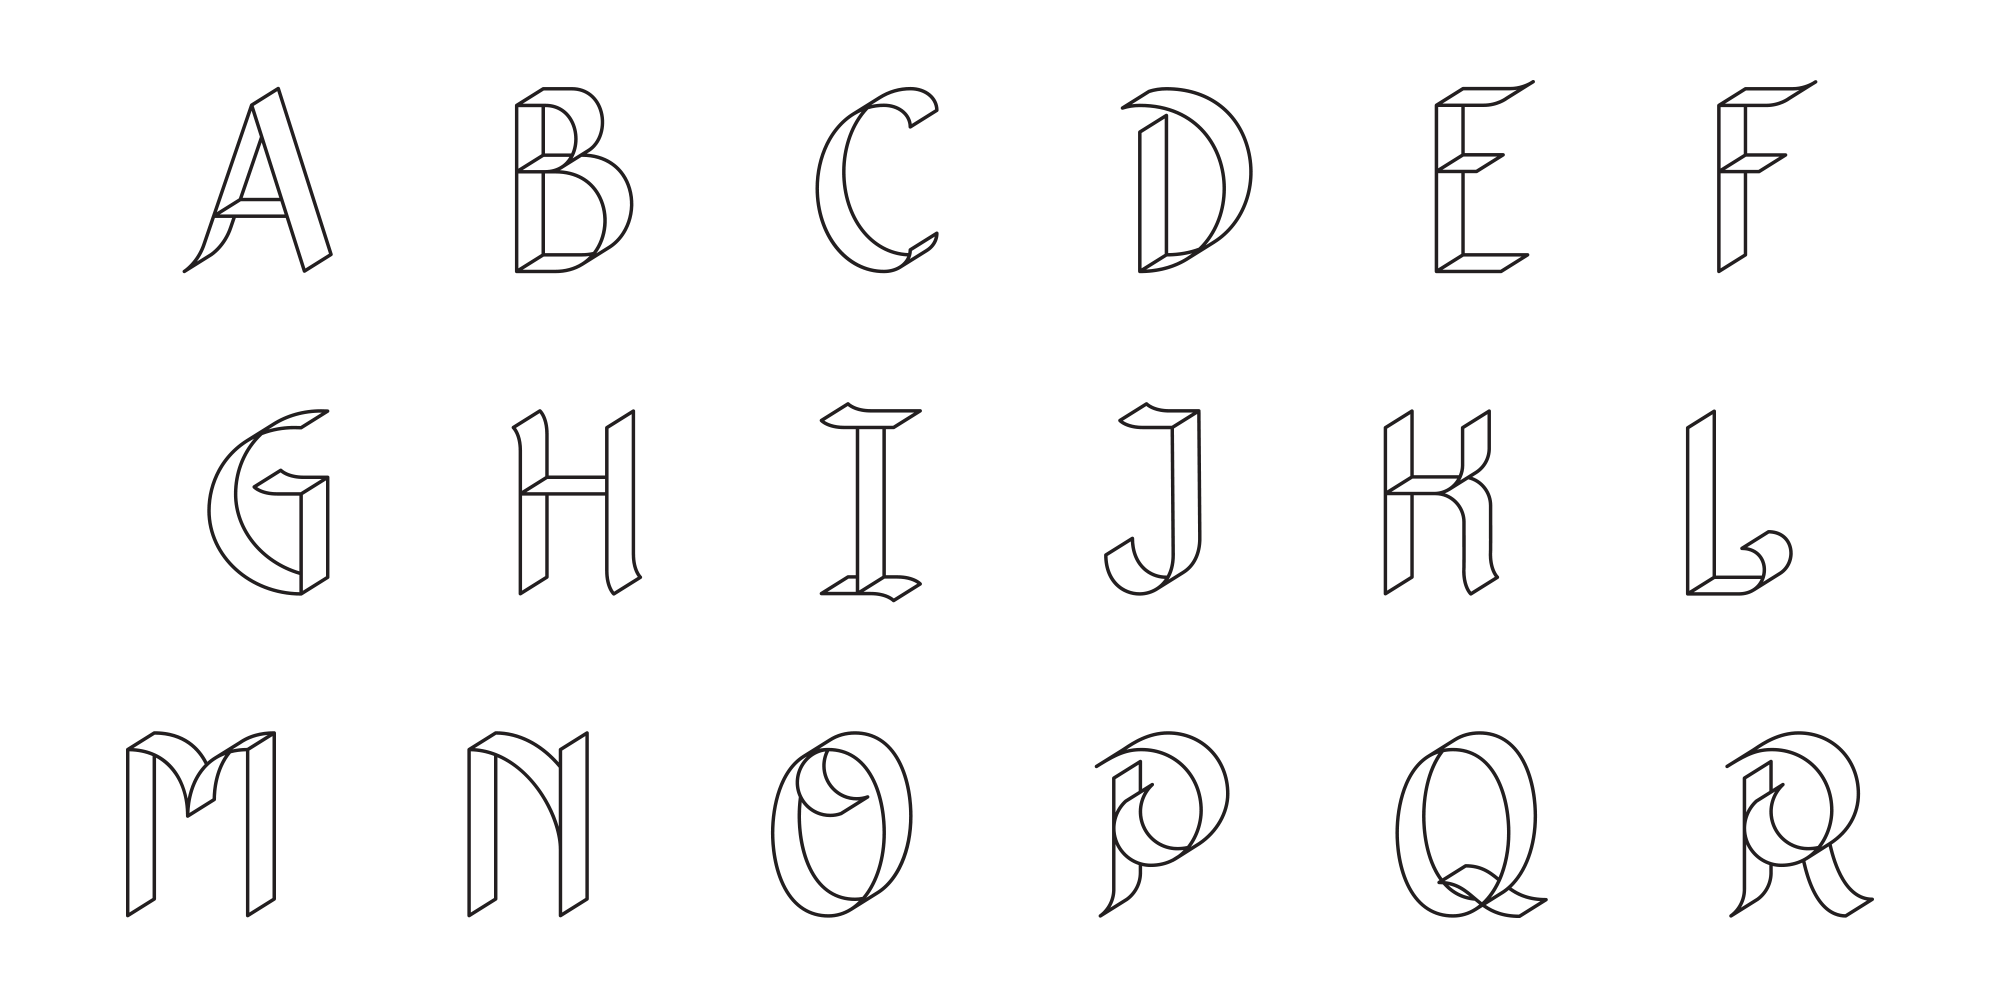 ADC_typeface1.png